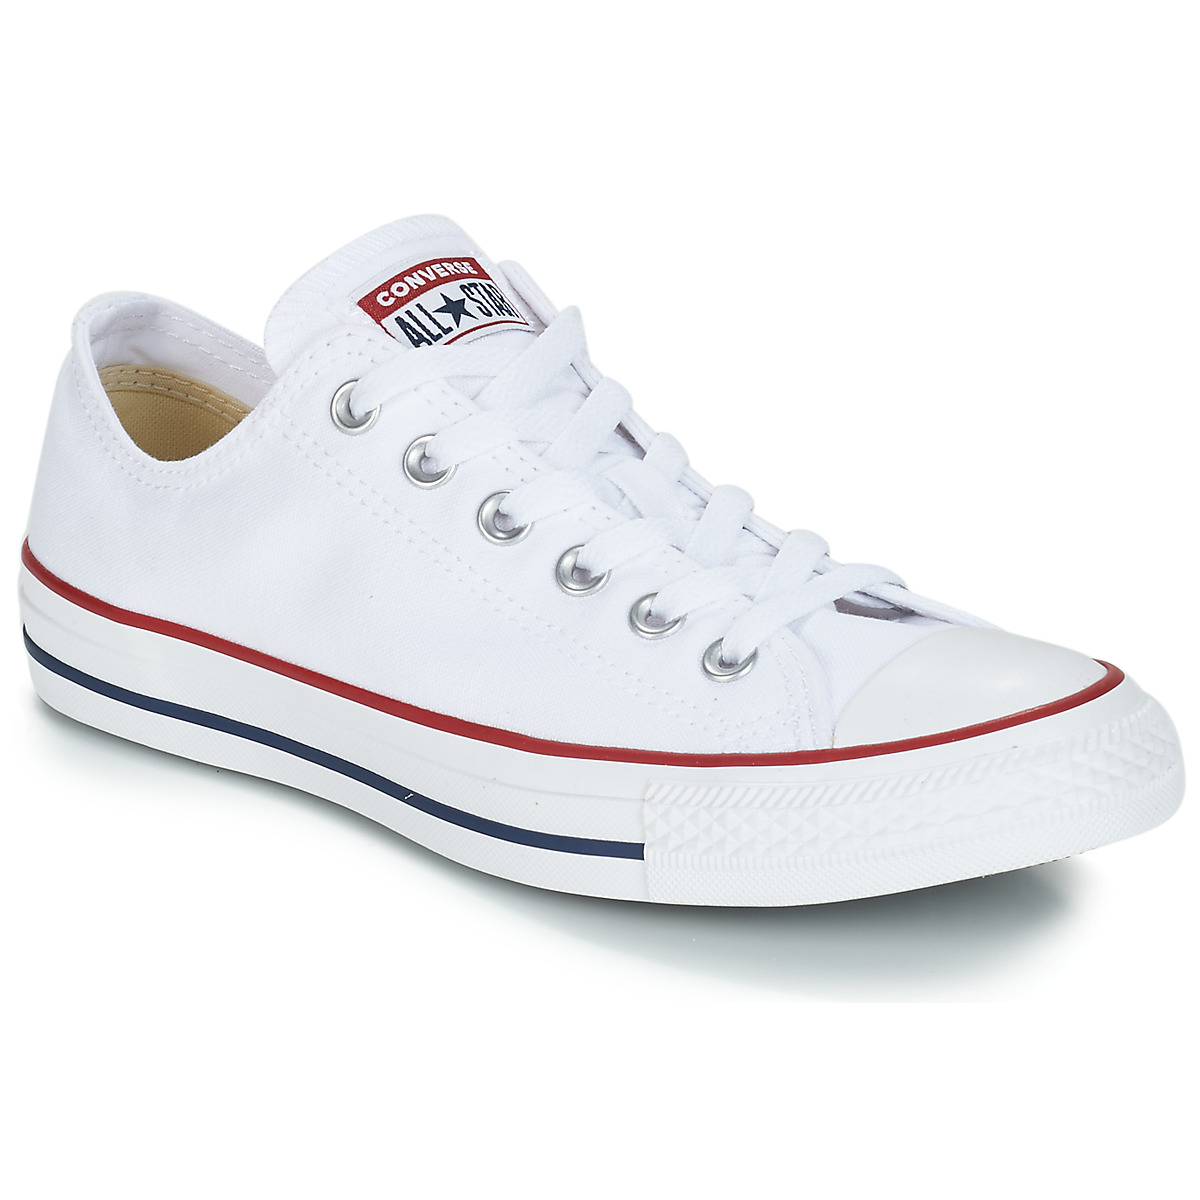 Converse ALL STAR CORE OX Optical White